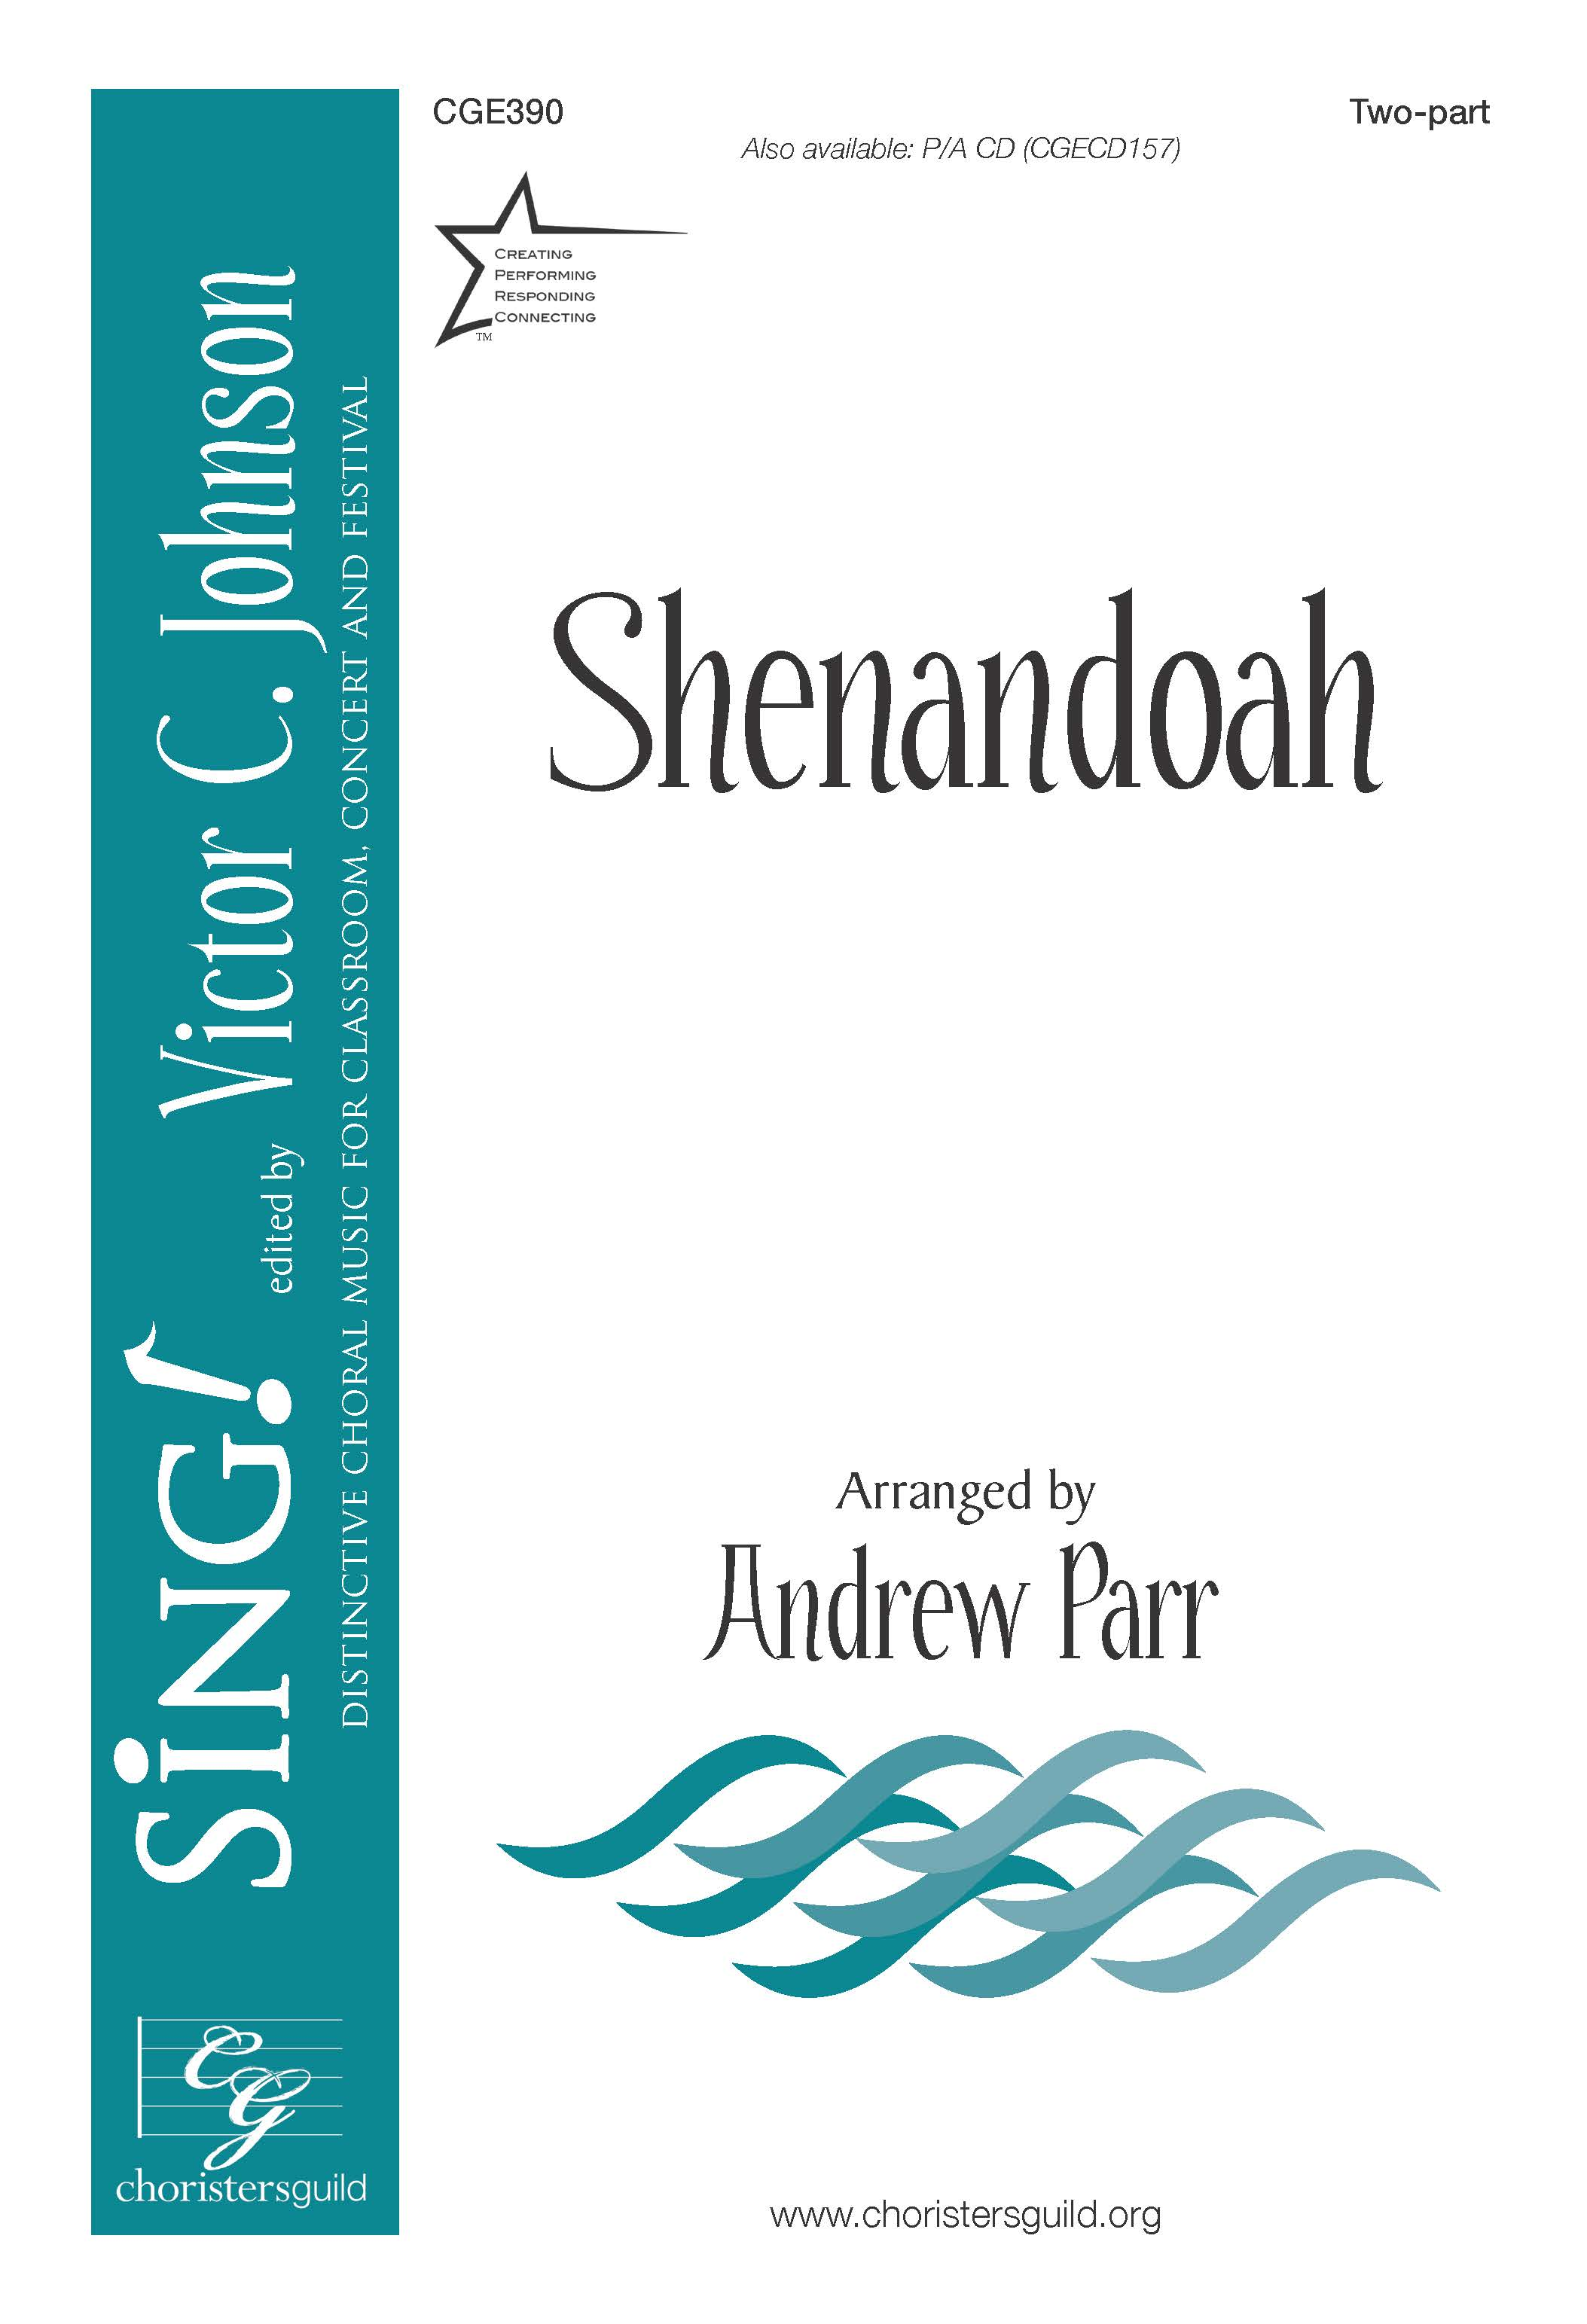 Shenandoah - Two-part